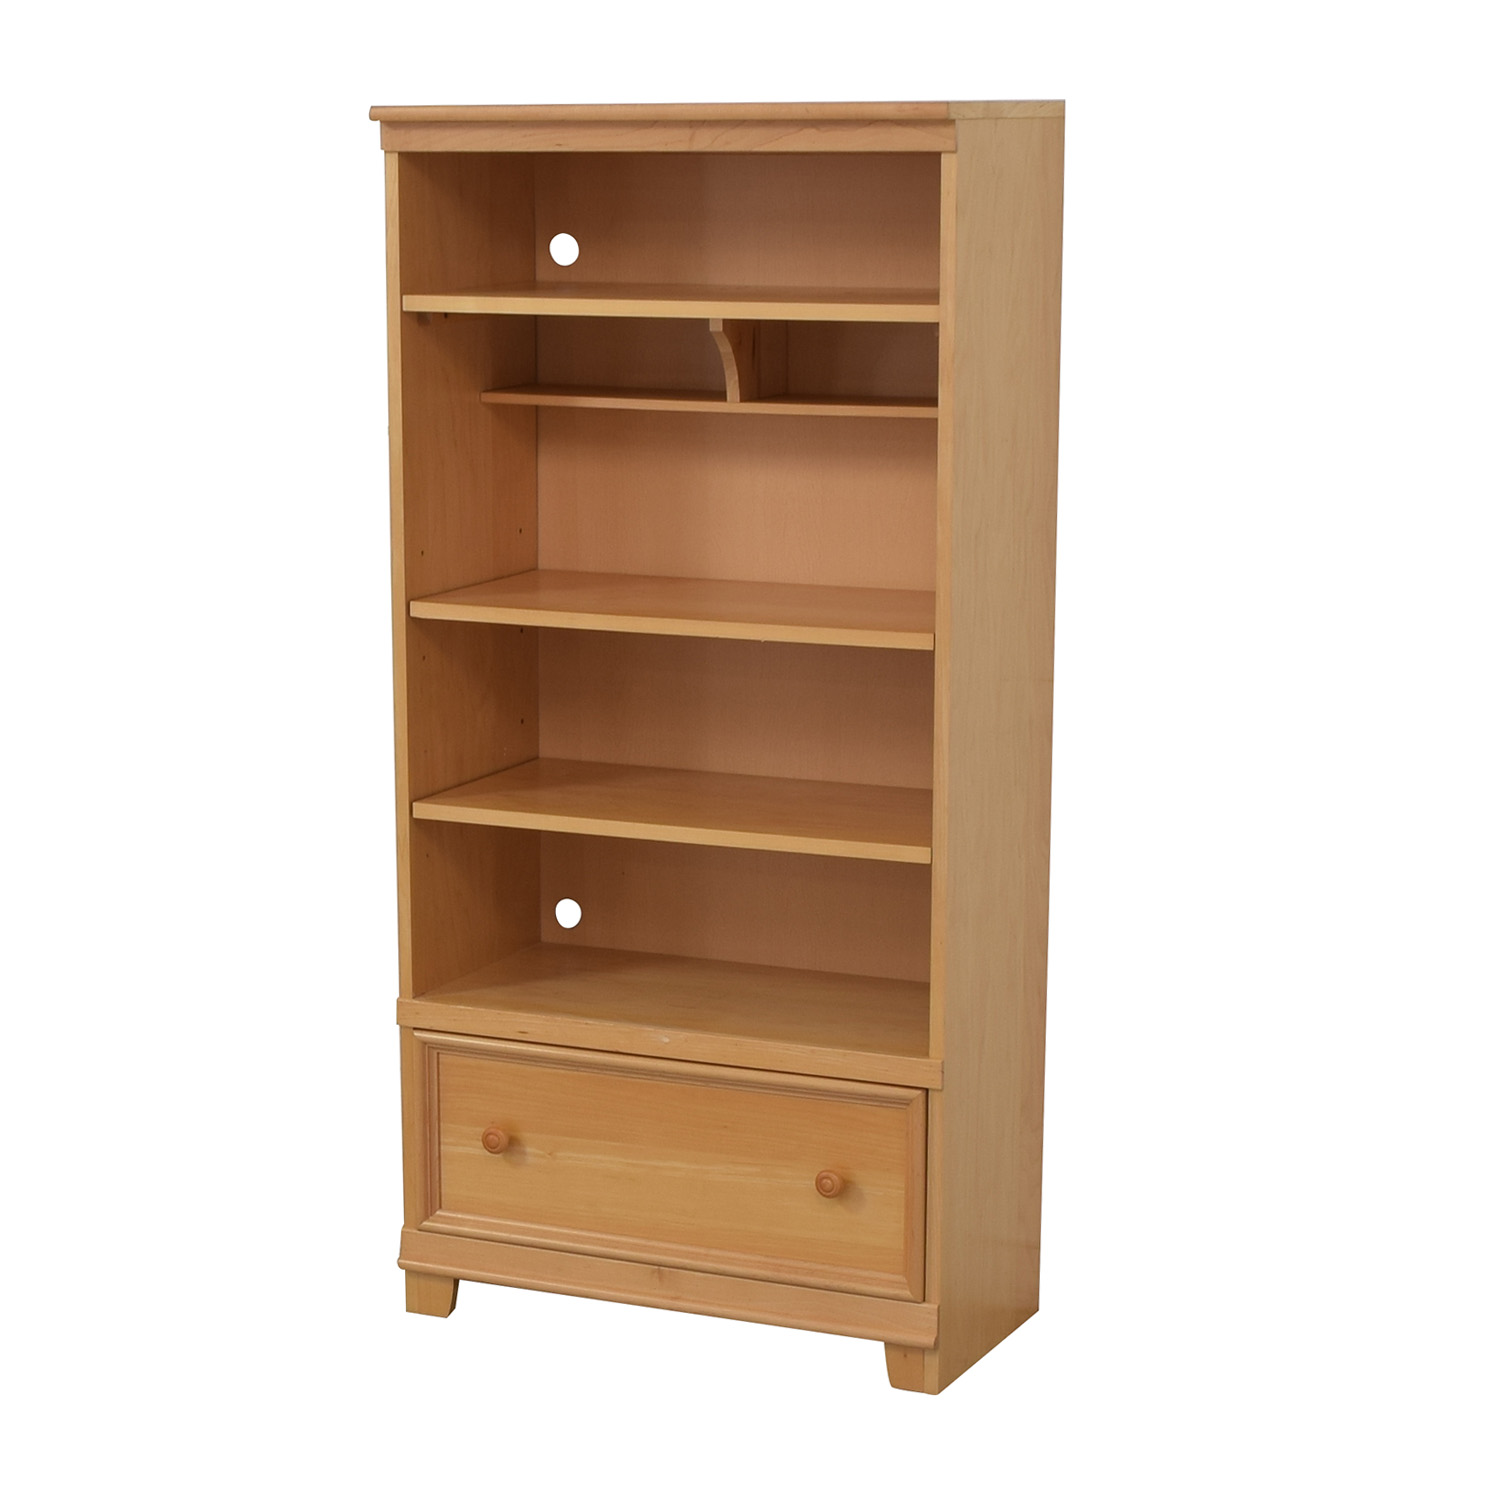 Stanley Furniture Stanley Furniture Young America Bookcase on sale